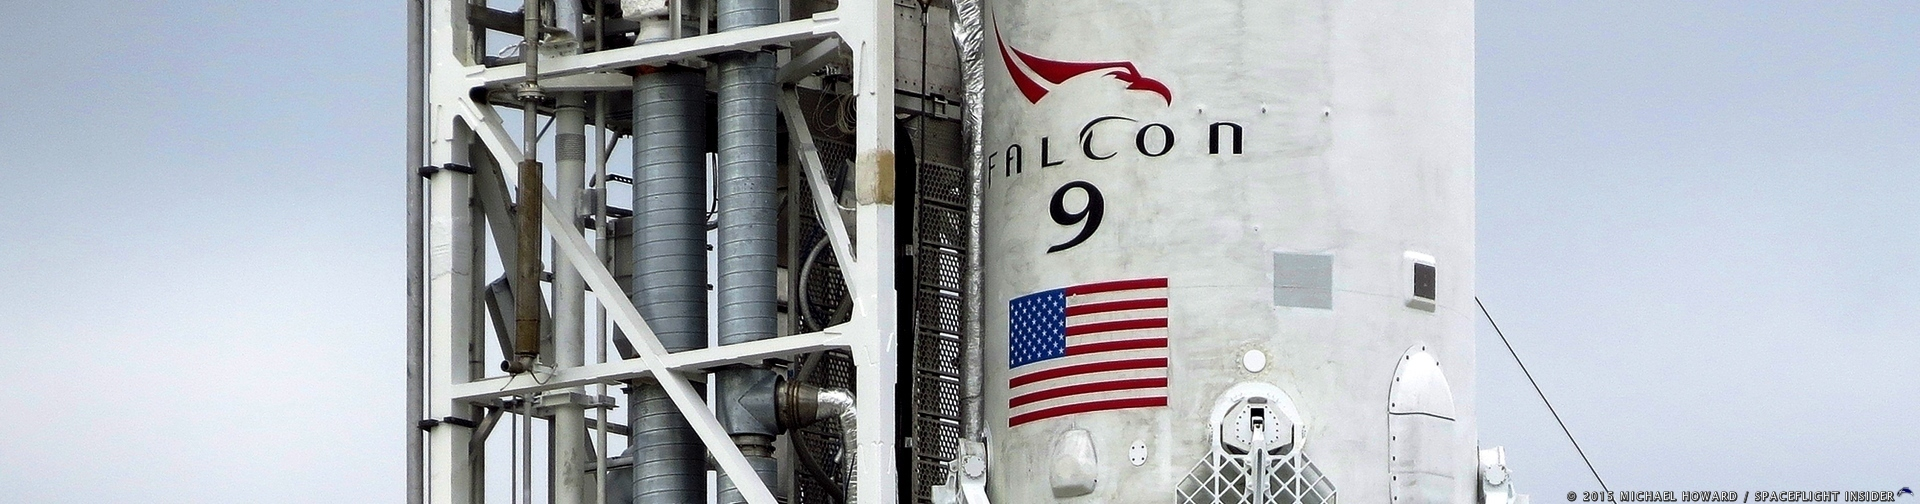 SpaceX is now hoping to conduct the Return-to-FLight of the Falcon 9 v1.2 on Sunday, Dec. 20 - with a three hour launch window opening at 8:29 p.m. EST (01:29 GMT). Photo Credit: Michael Howard / SpaceFlight Insider